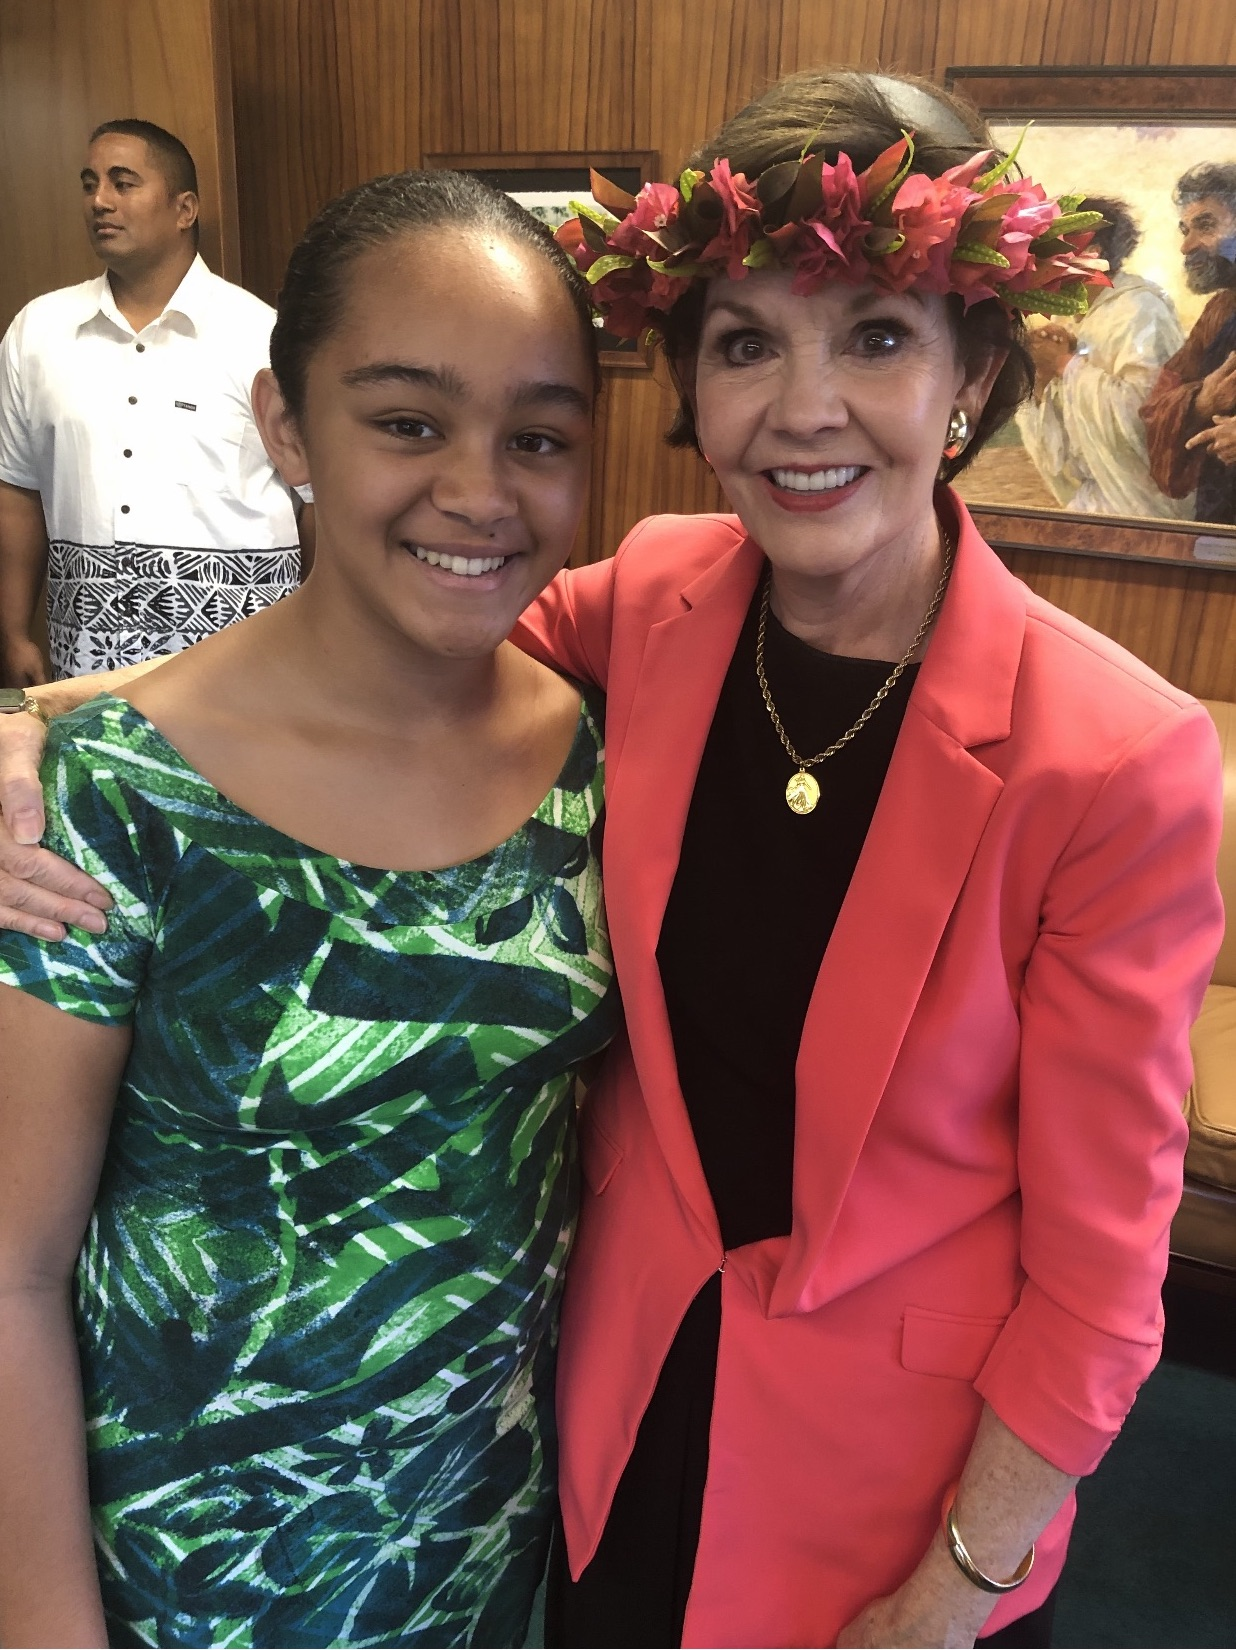 "Sister Kristen Oaks, right, a great-granddaughter of President Joseph F. Smith, is joined by Tanaya Ale, a great-great-great-granddaughter of Ma Mahuhii, a Hawaiian woman who nursed President Smith back to health when he fell seriously ill in Hawaii as a 15-year-old starting what would be a four-year mission there. Orphaned following the 1844 martyrdom death of his father, Hyrum Smith, and the passing of his mother, Mary Fielding Smith, two years before his mission, the young Joseph F. Smith considered Mahuhii his ""second mother"" for her loving care. Bishop Charles W. Nibley recounted witnessing a tender reunion years later in accompanying President Smith on a visit to the islands: ""I noticed a poor, old, blind woman tottering under the weight of about 90 years being led \[into the meeting house where the Saints were gathering to greet President Joseph F. Smith\]. She had a few choice bananas in her hand. It was her all–her offering. She was calling 'Iosepa, Iosepa!' Instantly, when he saw her, he ran to her and clasped her in his arms, hugged her, and kissed her over and over again, patting her on the head saying, 'Momma, Momma, my dear old Momma!' And with tears streaming down his cheeks he turned to me and said, 'Charley, she nursed me when I was a boy, sick and without anyone to care for me. She took me in and was a mother to me!' "" \[From ""The Life of Joseph F. Smith,"" Joseph Fielding Smith, p. 185-86\]"